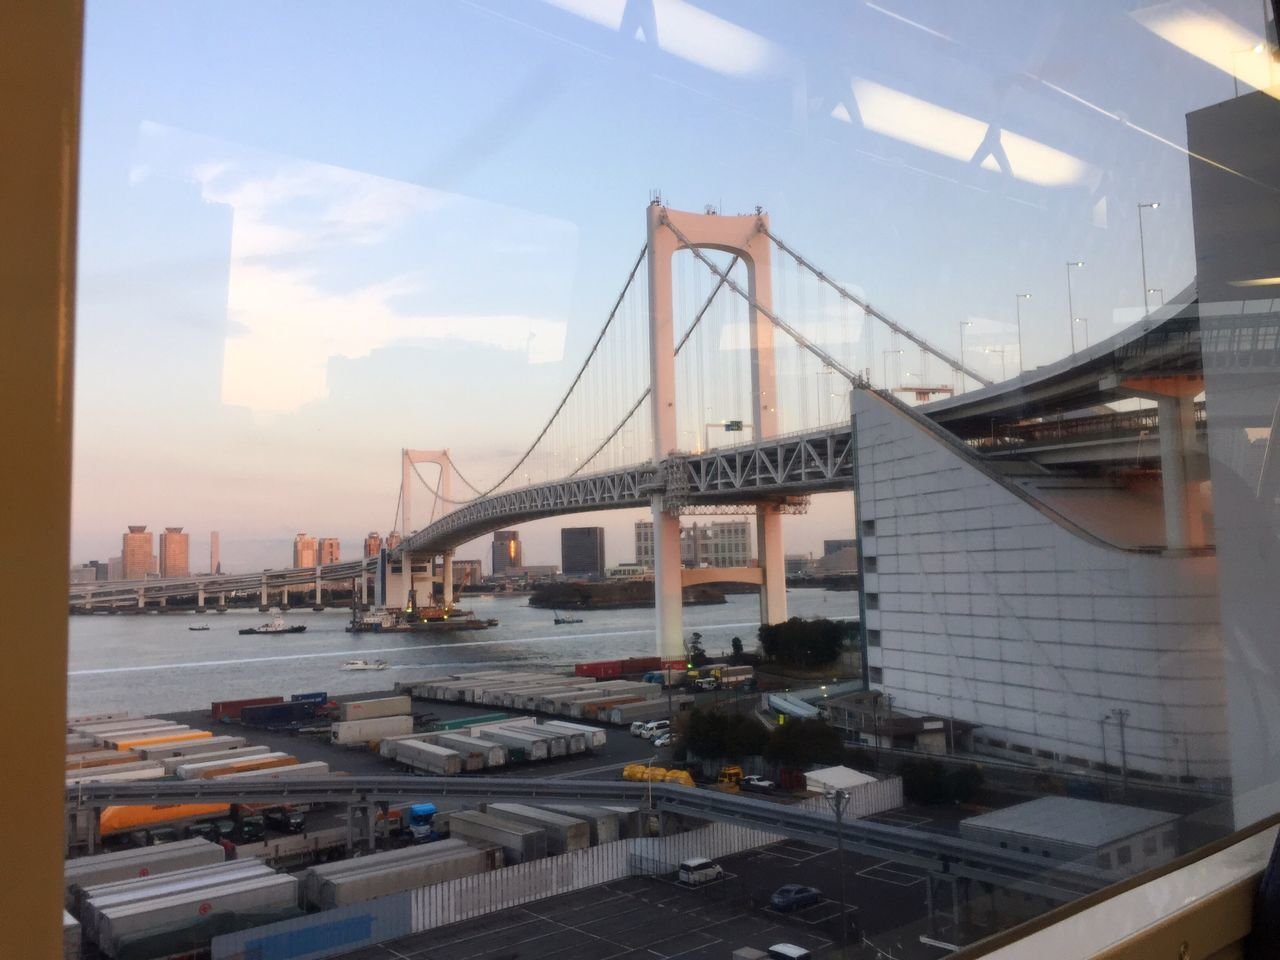 Taking Photos Tokyo Travel Trip Traveling Metro Subway Train From My Point Of View Window View Reflection Bridge Sunset IPhoneography